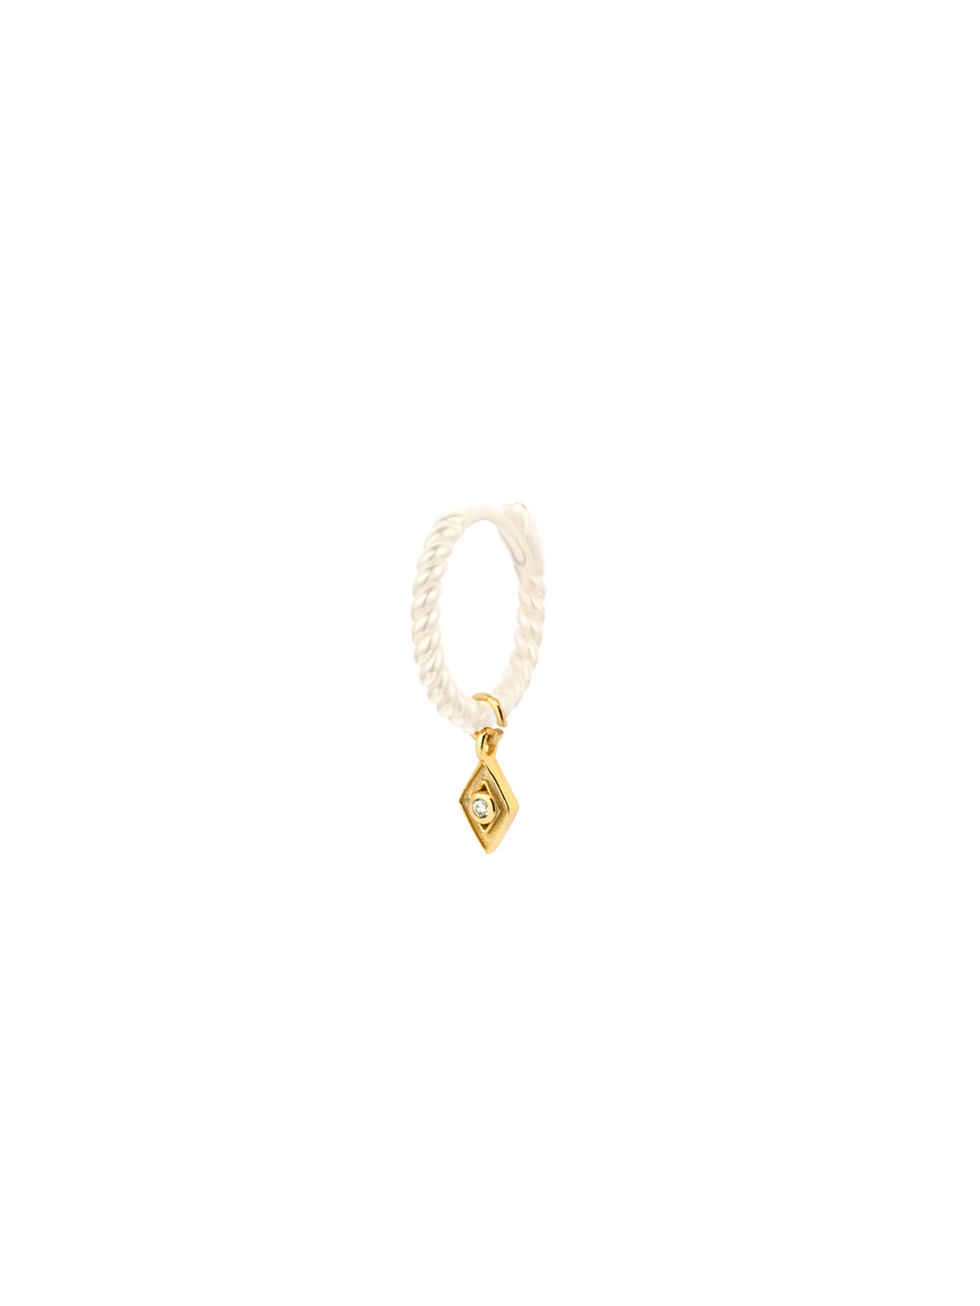 Single charm ROMBO oro